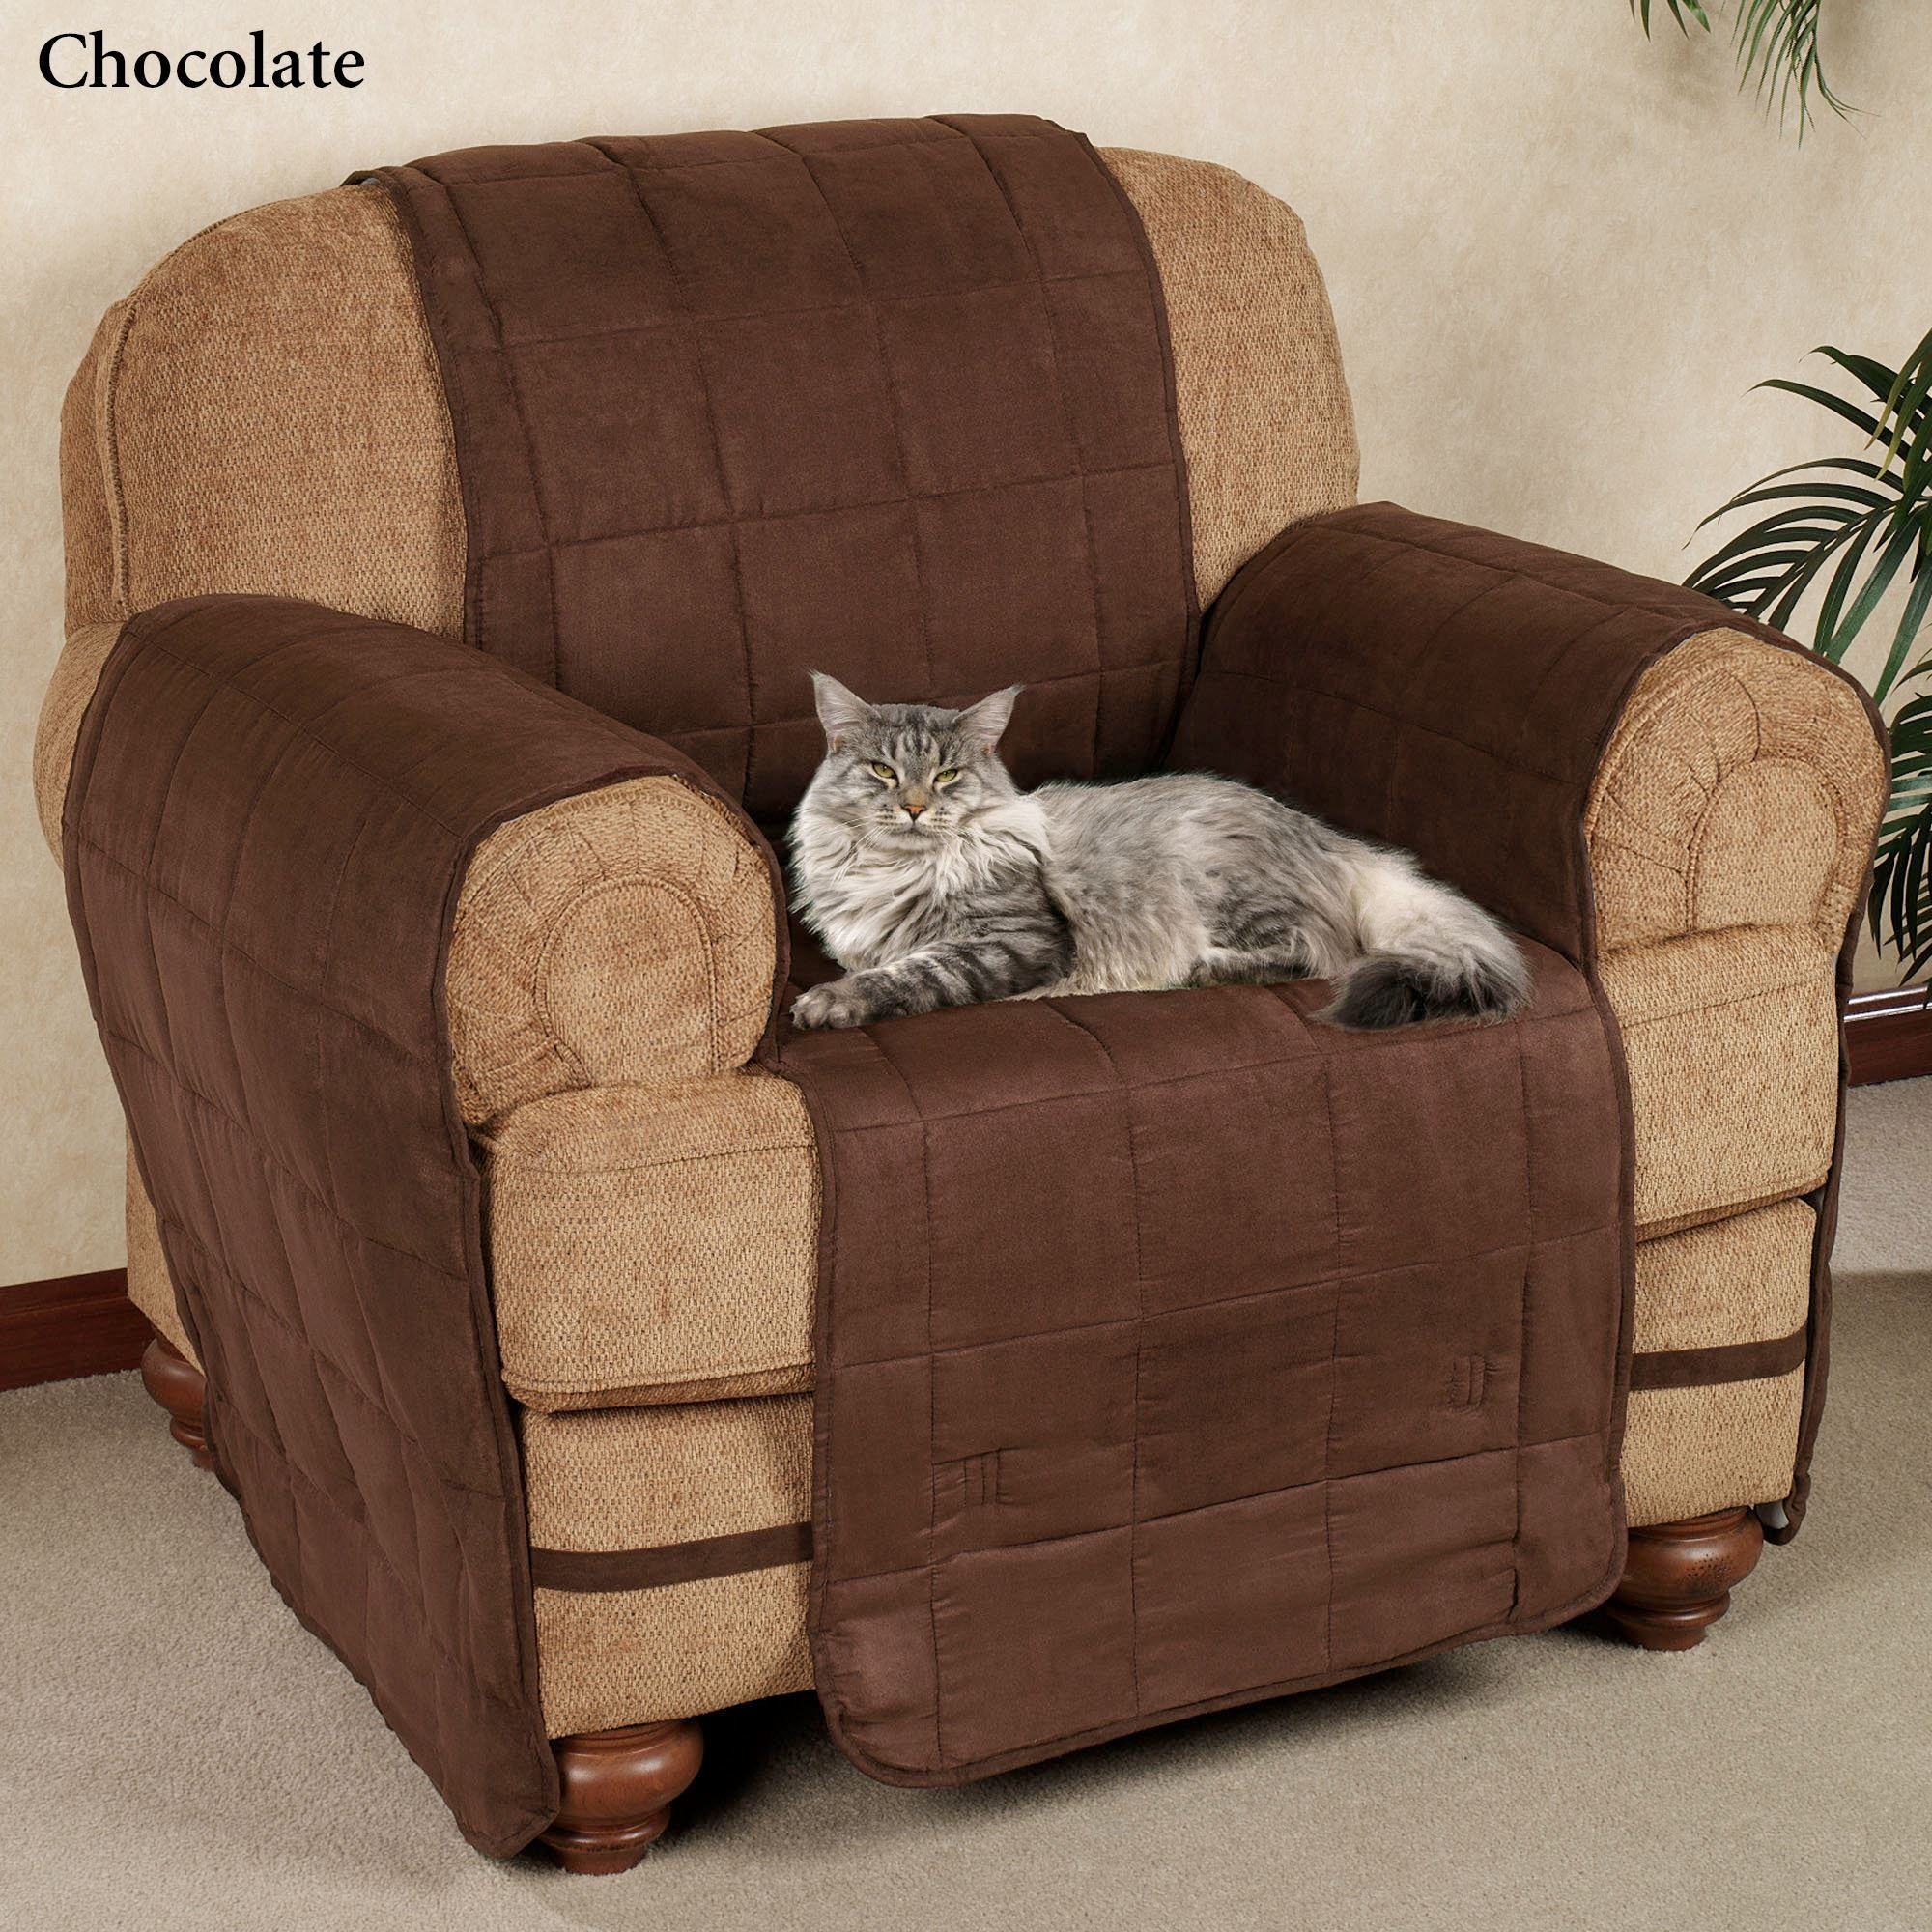 Sofa Protectors Australia Ultimate Pet Furniture Protectors With Straps